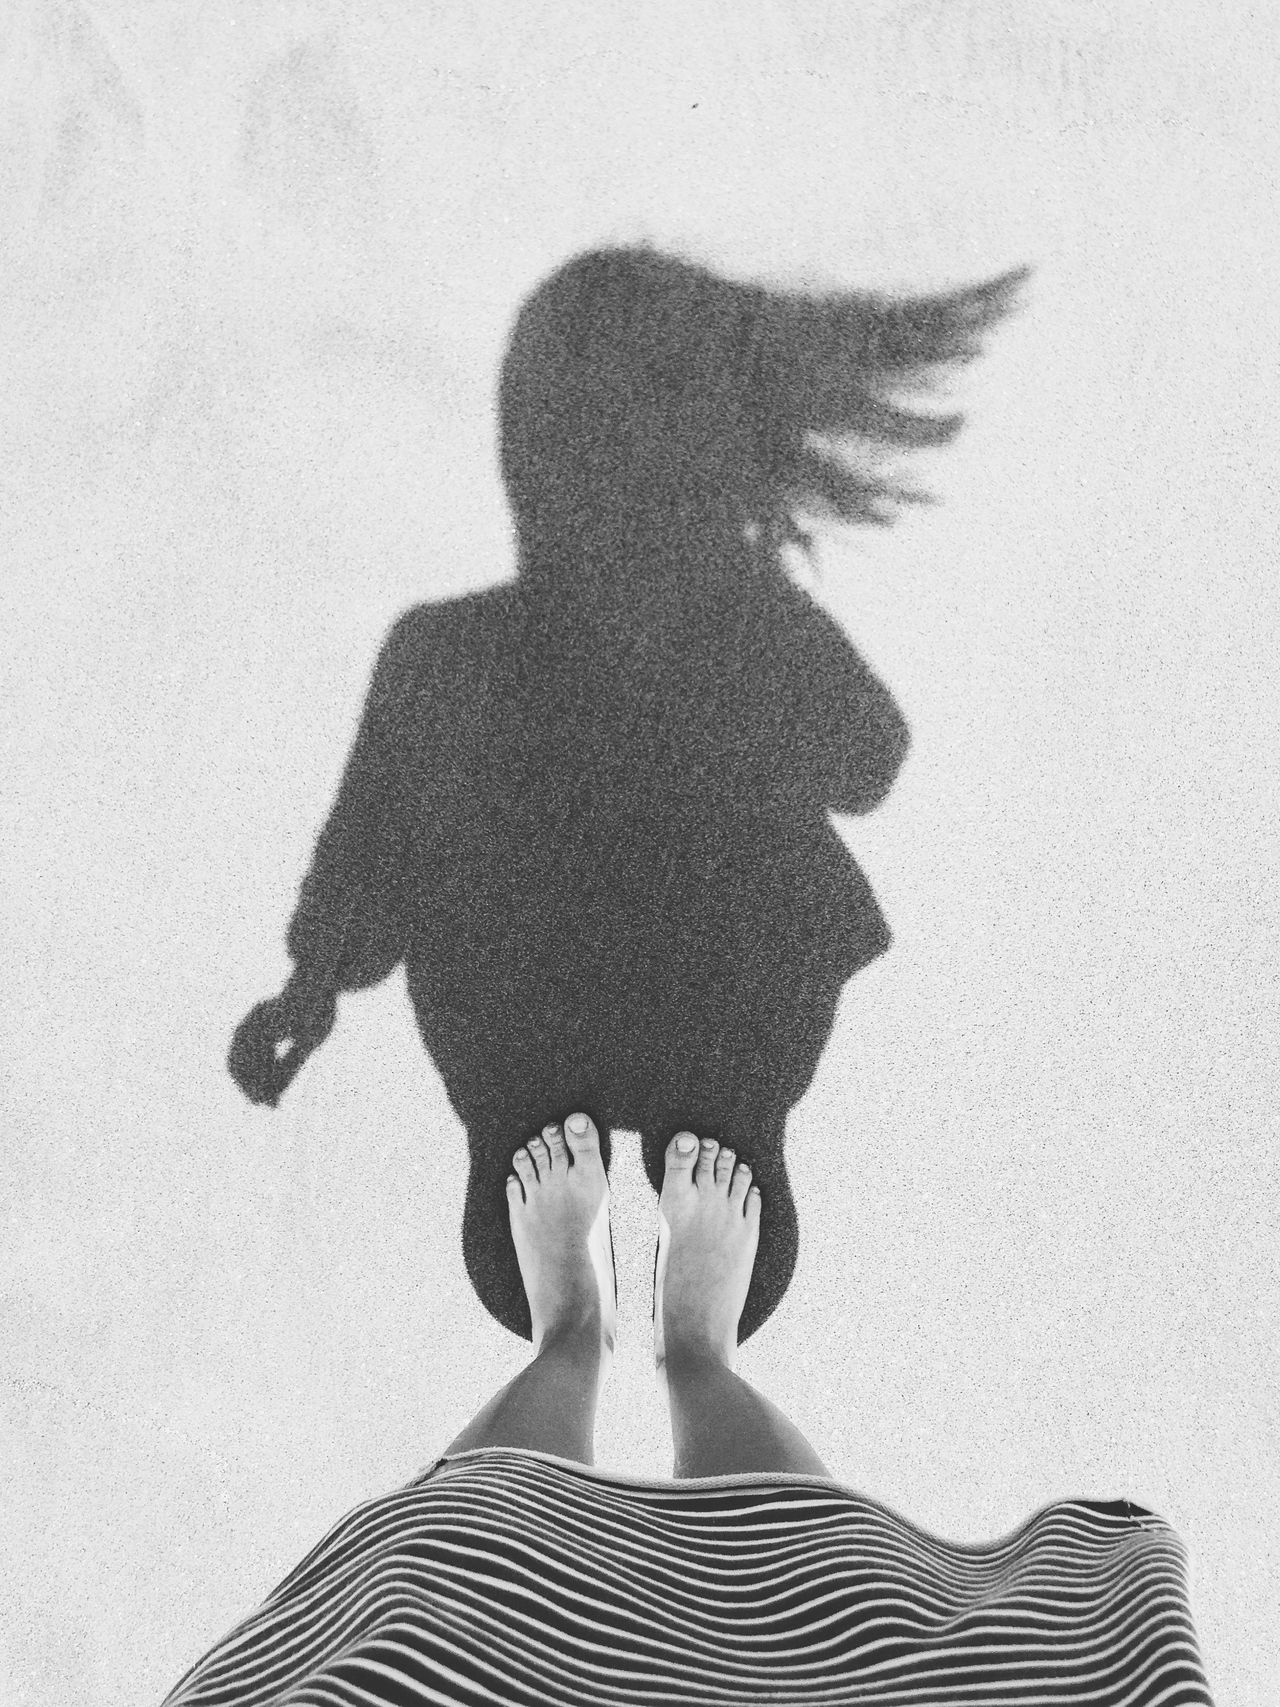 Hair in the wind Barefoot Black And White Photography Blackandwhite Day Female Foot From Above  Hair In The Wind Human Body Part IPhoneography Iphonephotography Minimal Outdoors Portrait Sand Shadow Silhouette Summer Toes Vacation Wind Woman Portrait